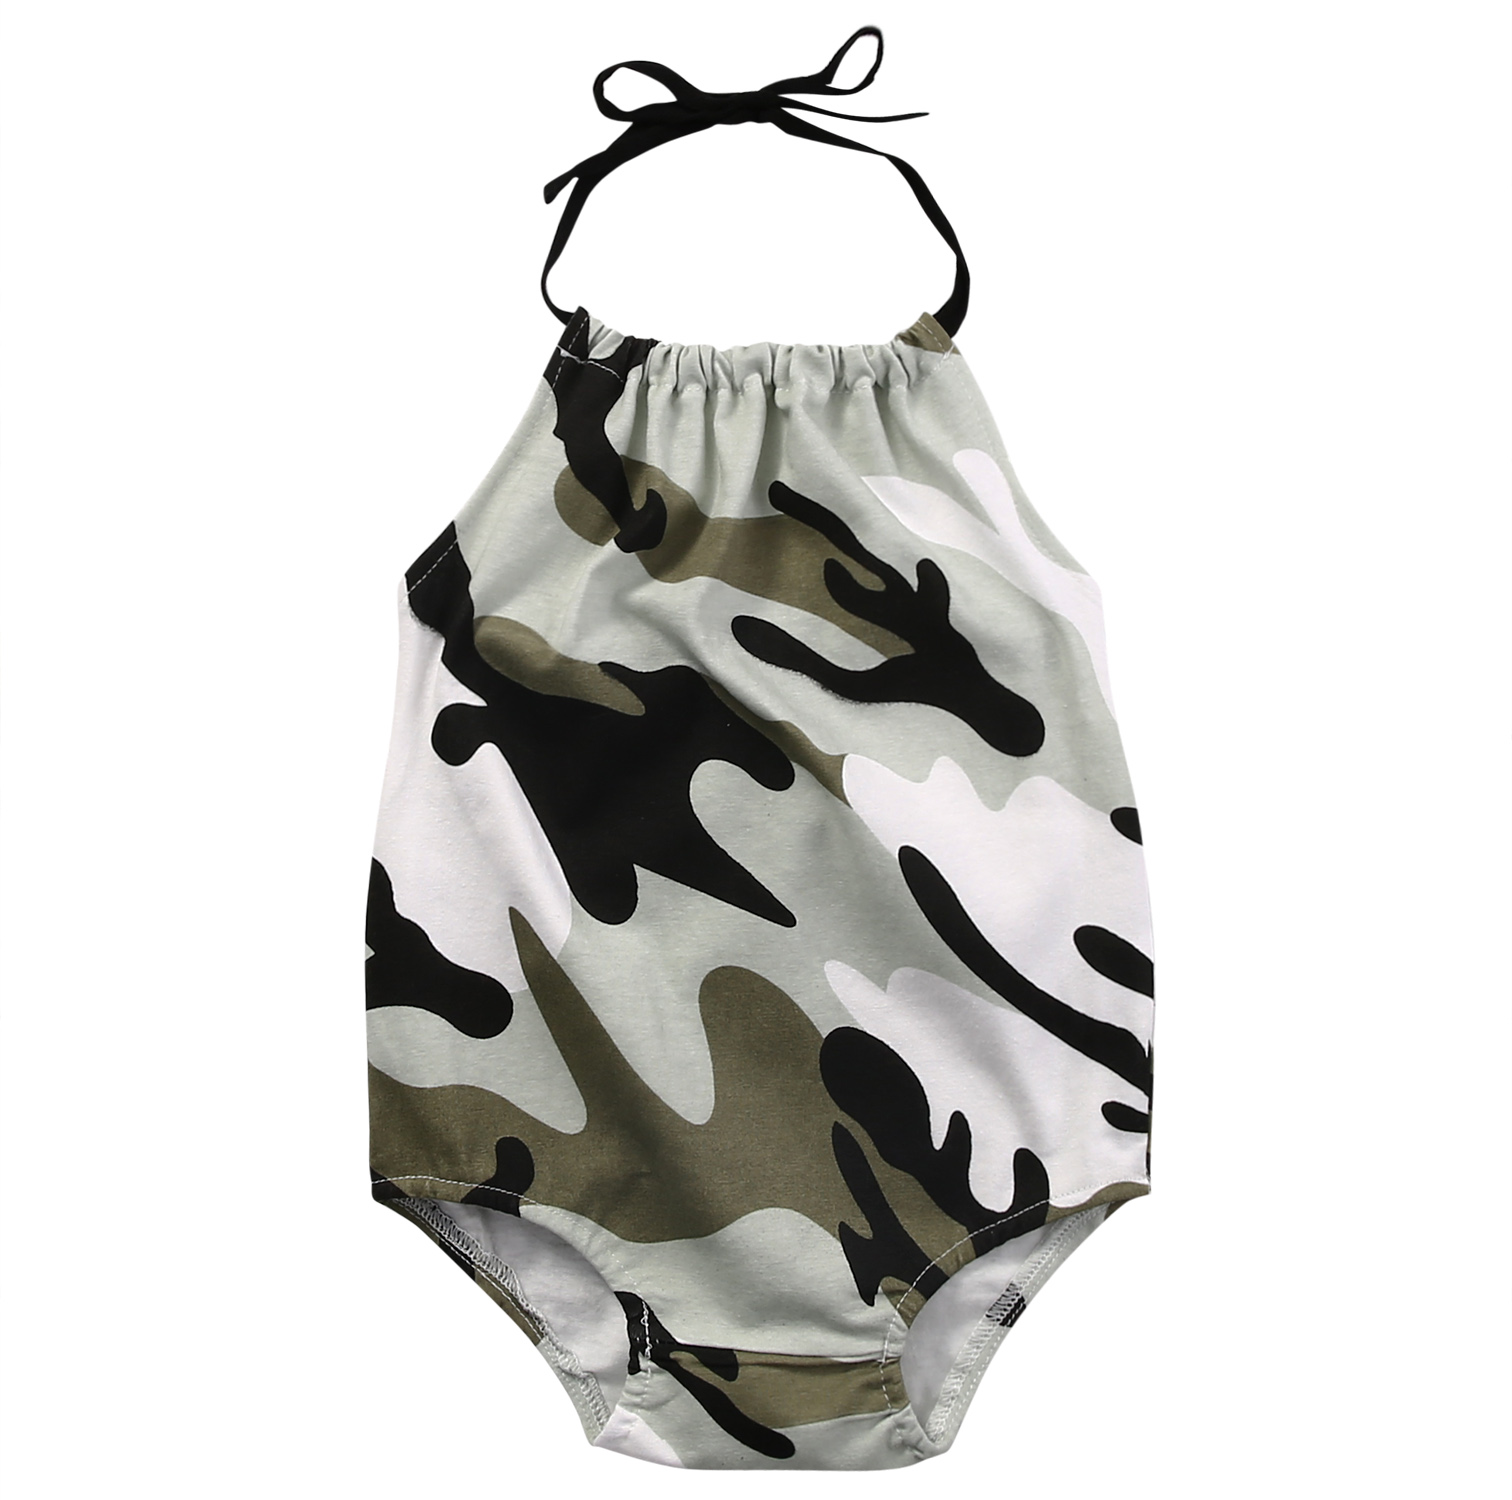 Elegant Images Of Camouflage Baby Girl Clothes - Cutest ...